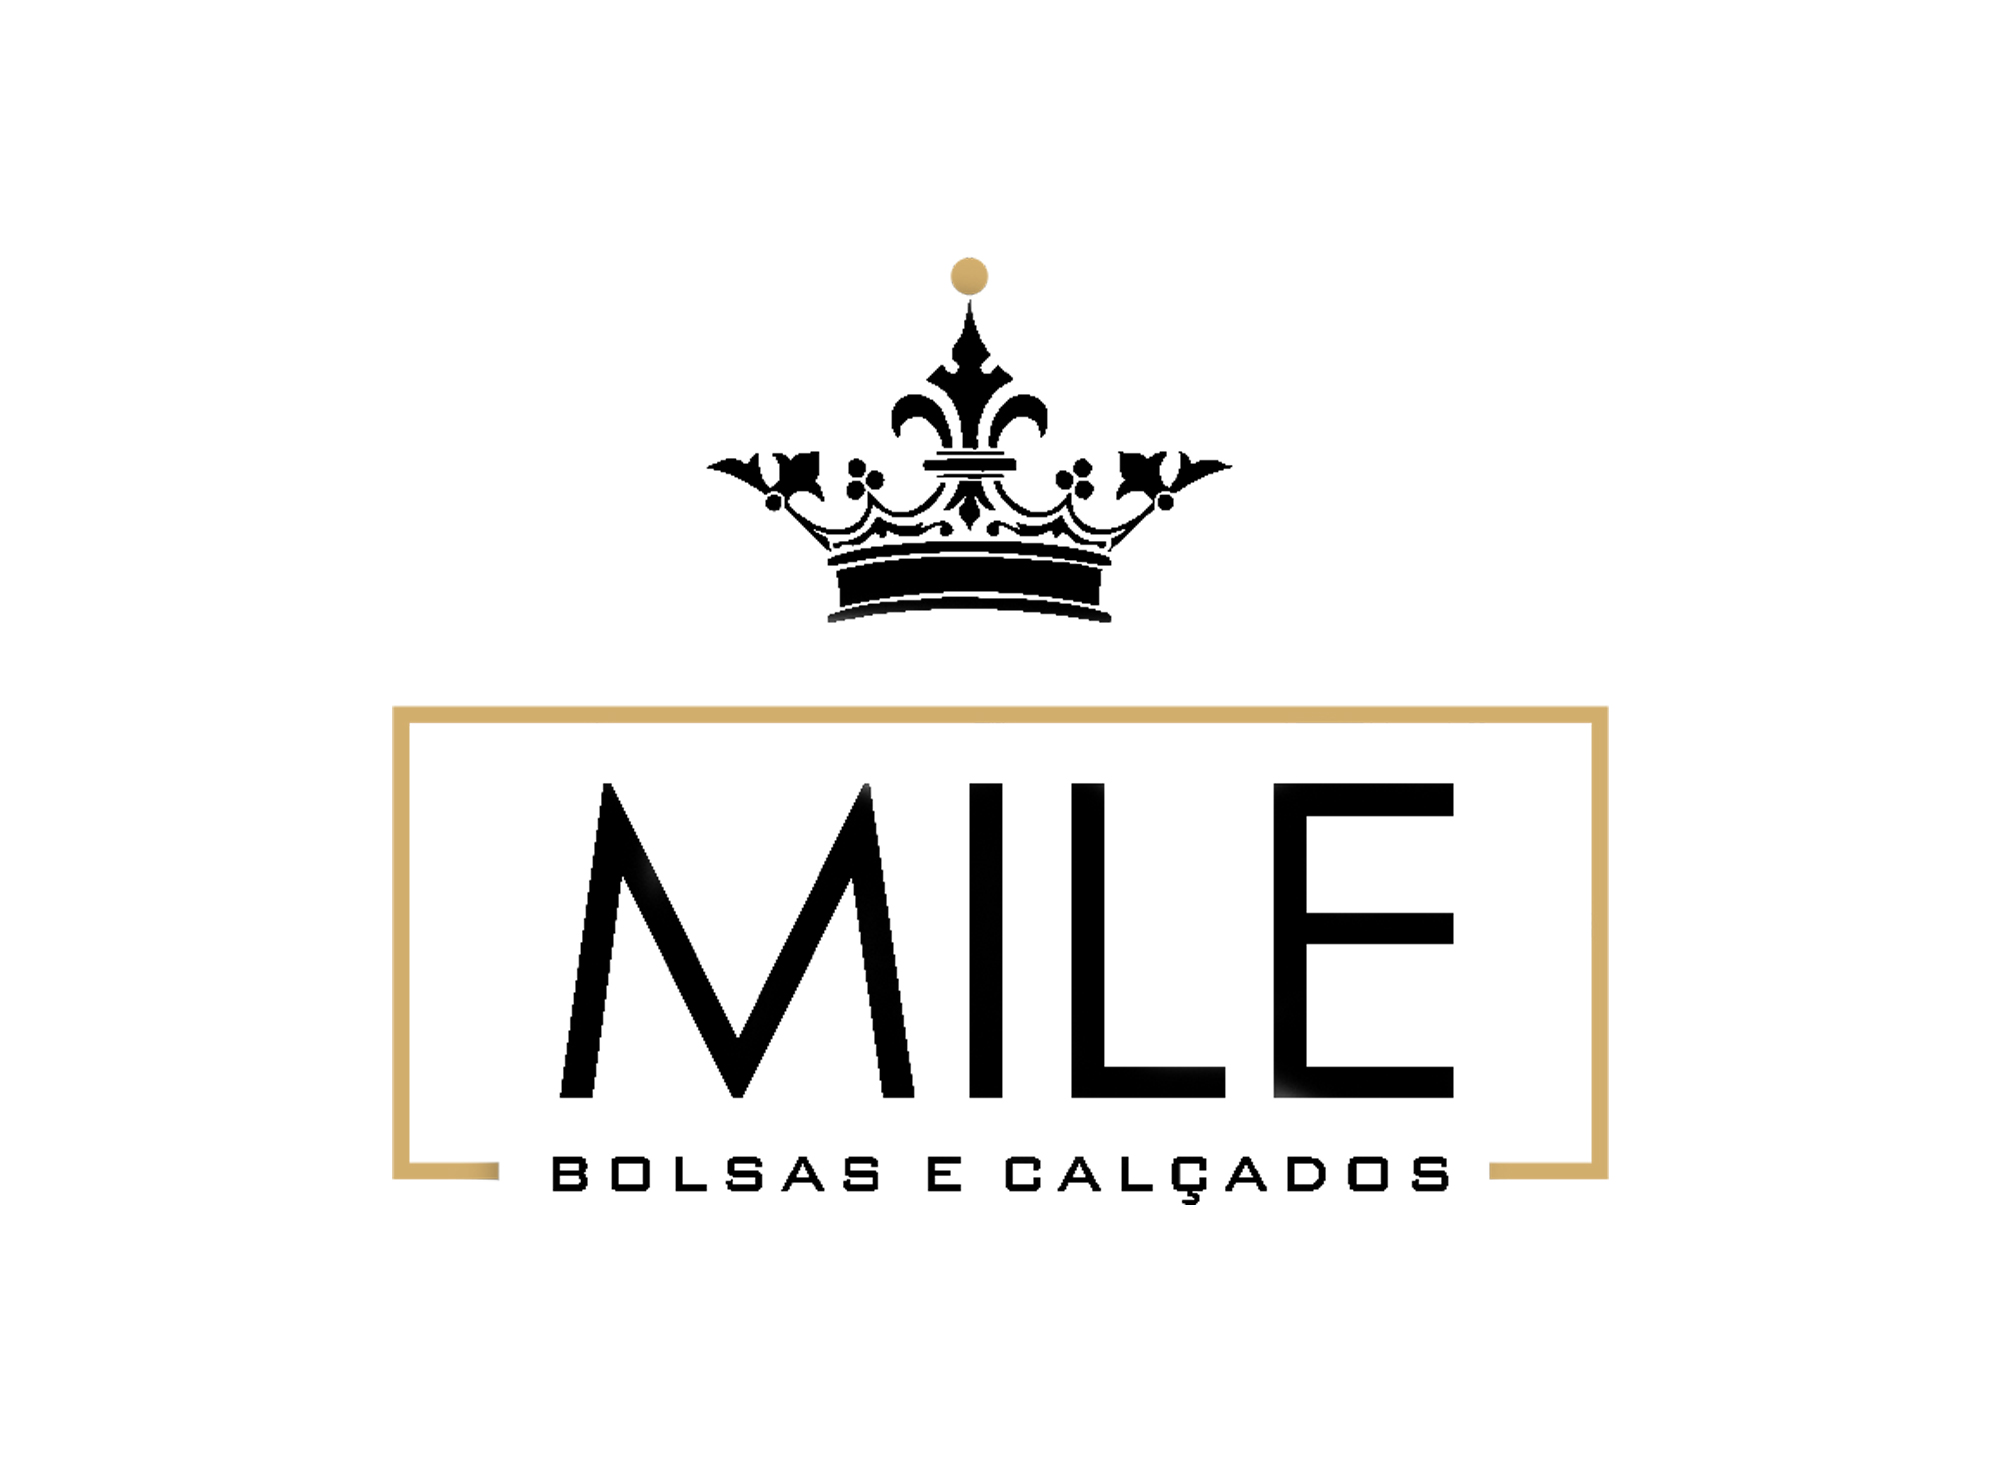 mile-bolsas-calcados-cliente-agencia-diretriz-digital-marketing-fortaleza